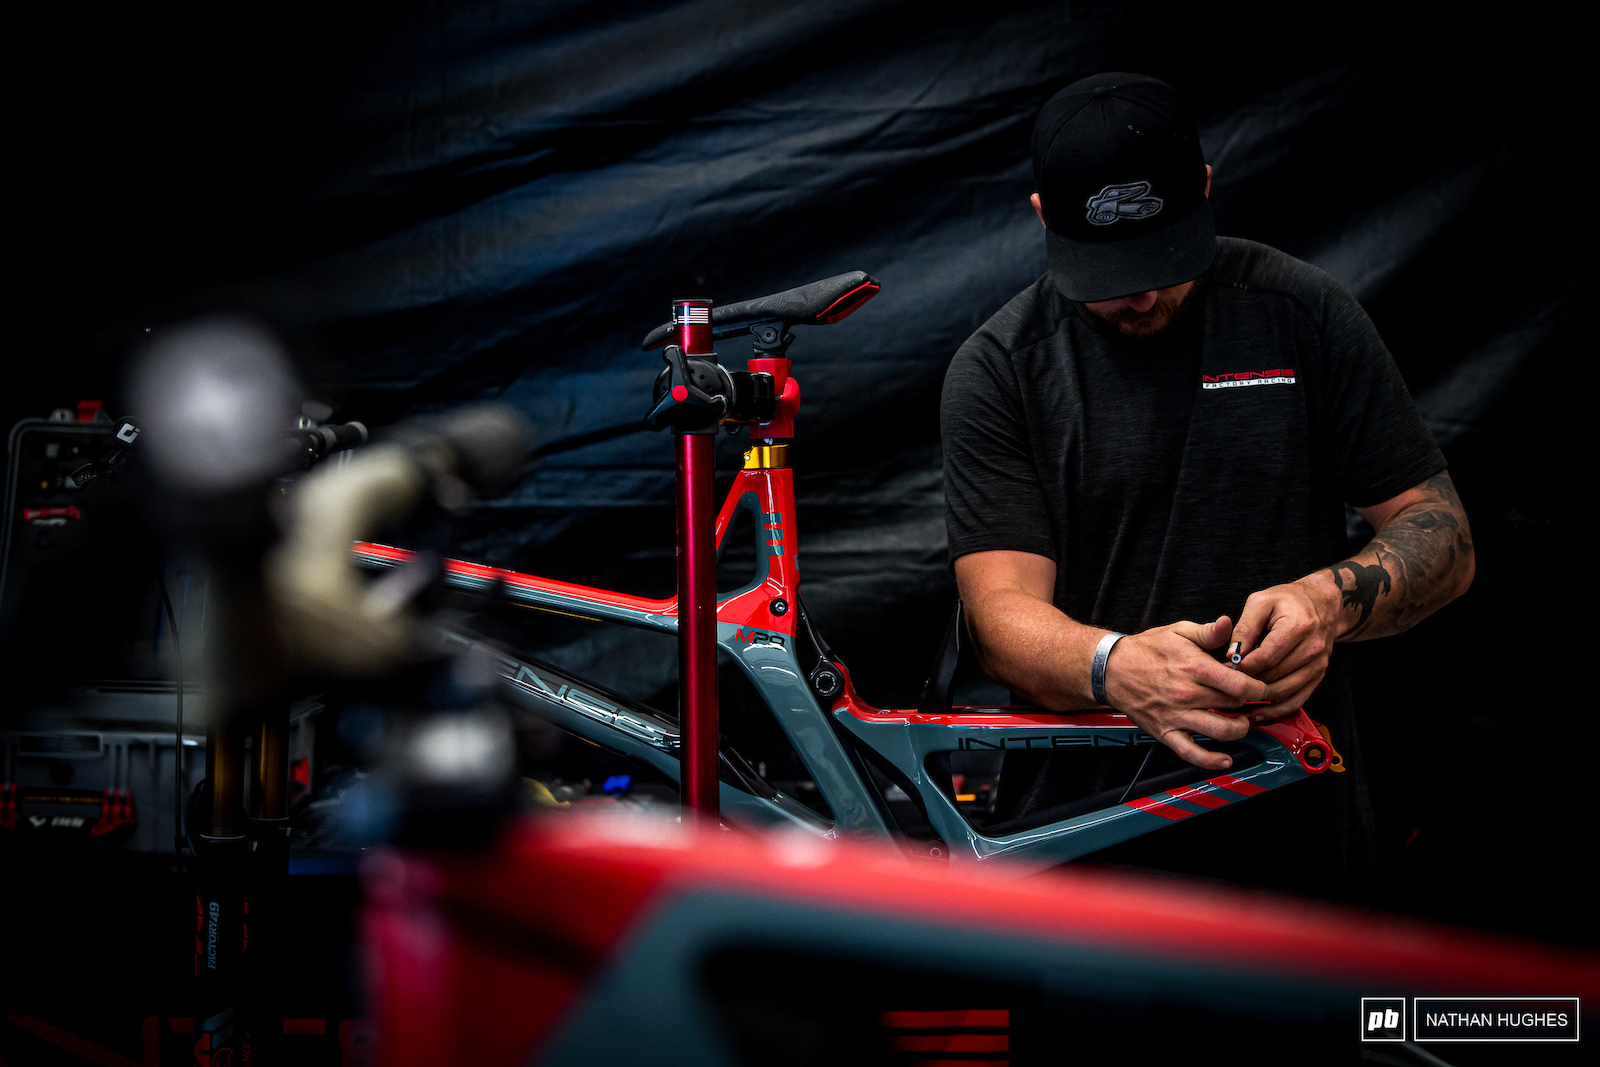 Finishing touches from John Hall on the Gwizard s new ride.